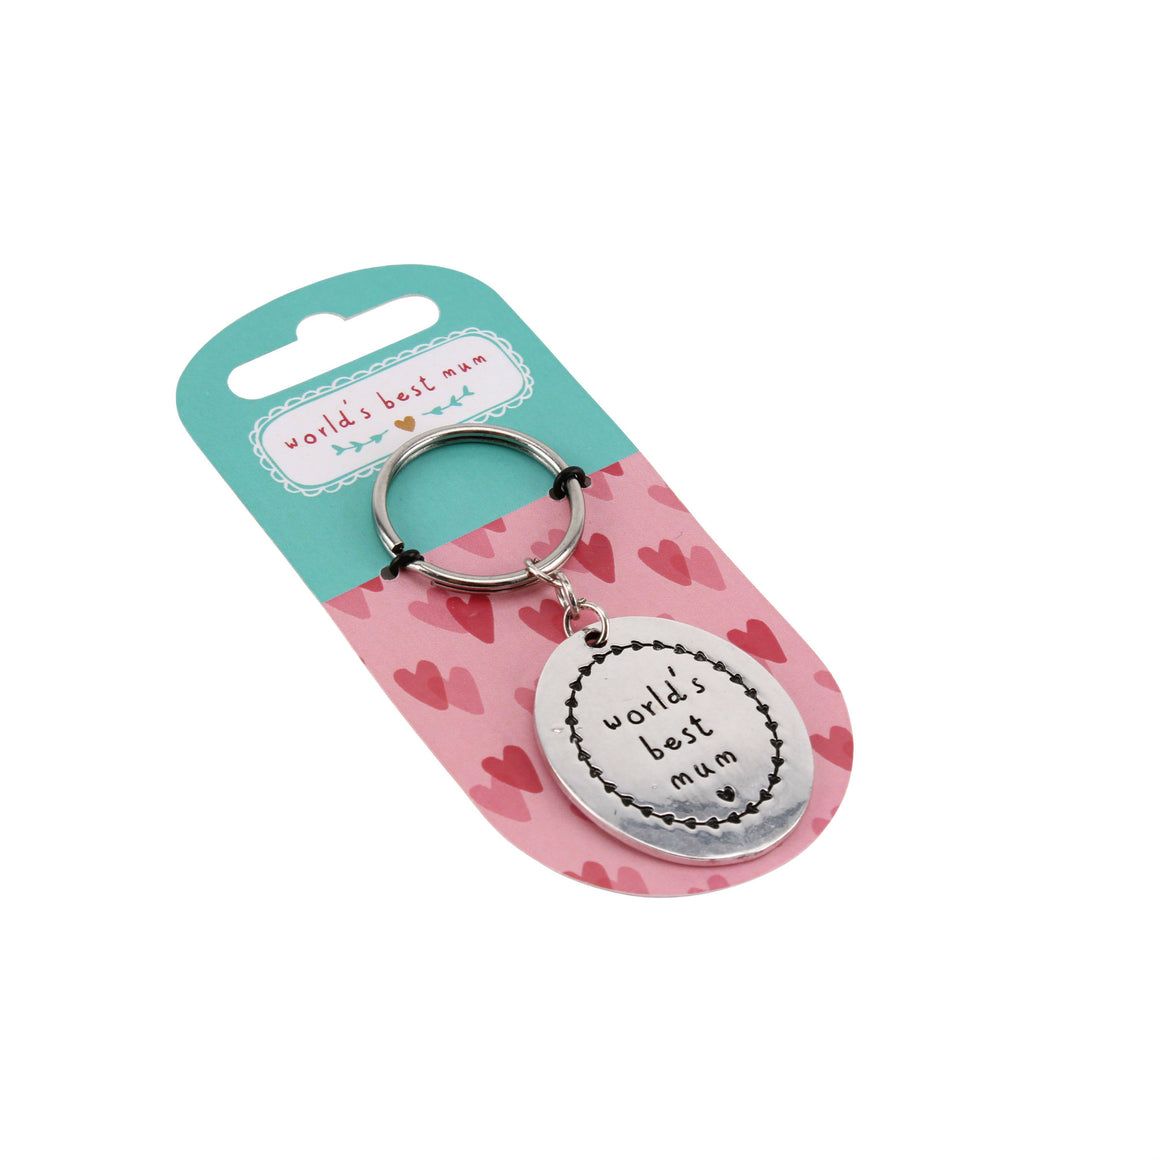 World's Best Mum Keyring - The Love Trees